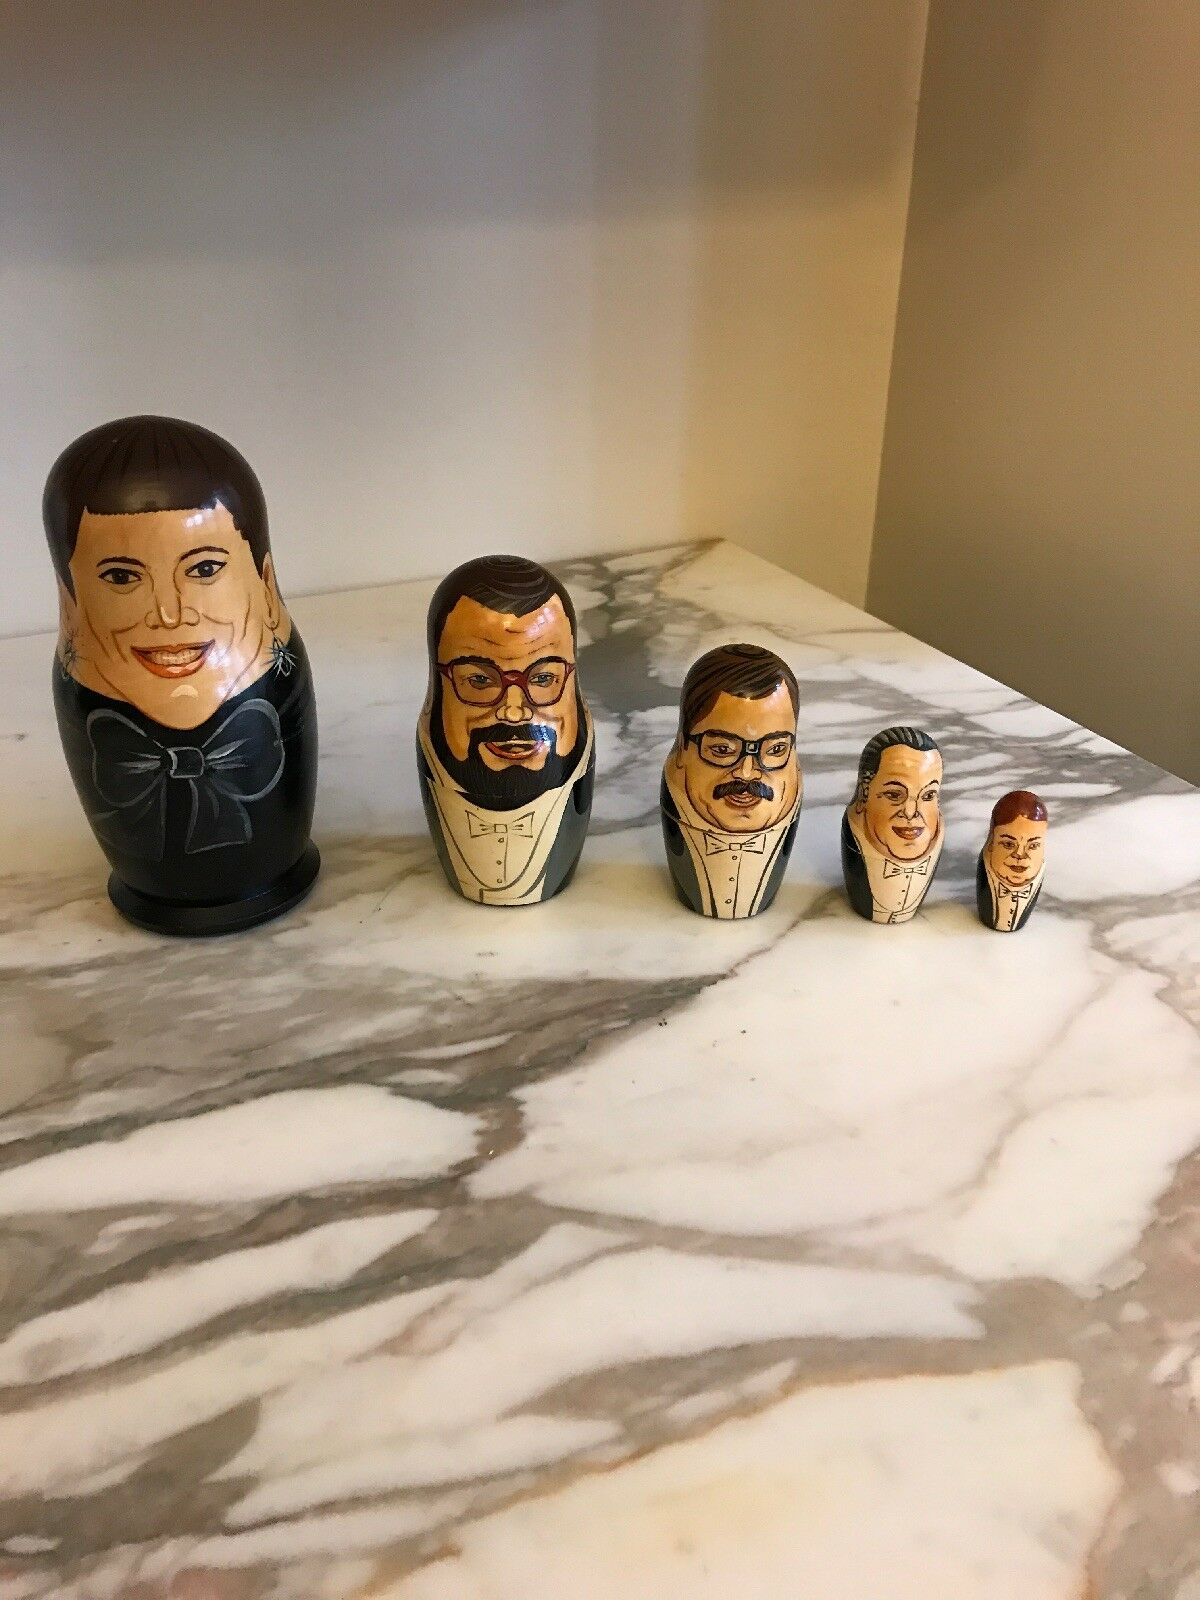 Indianapolis Symphony Orchestra Russian 5 piece Nesting Dolls Hand Painted 1993